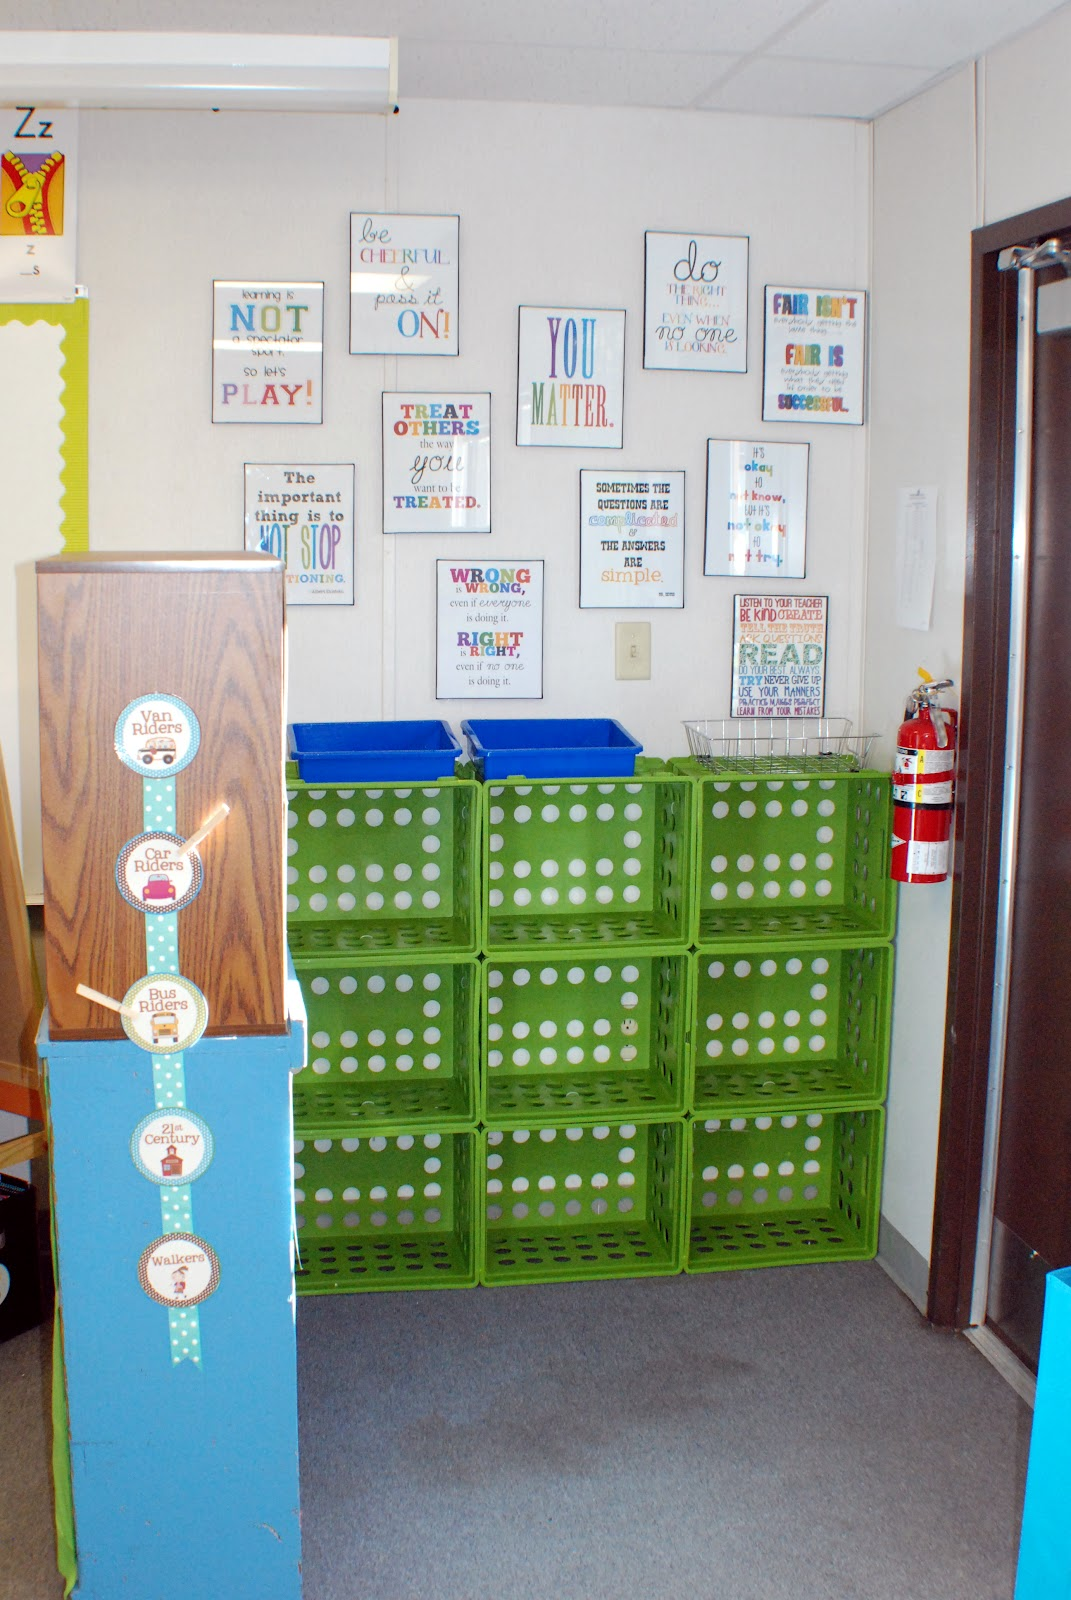 Classroom Design For Special Needs Students : Teacher week classroom tour update photo overload the